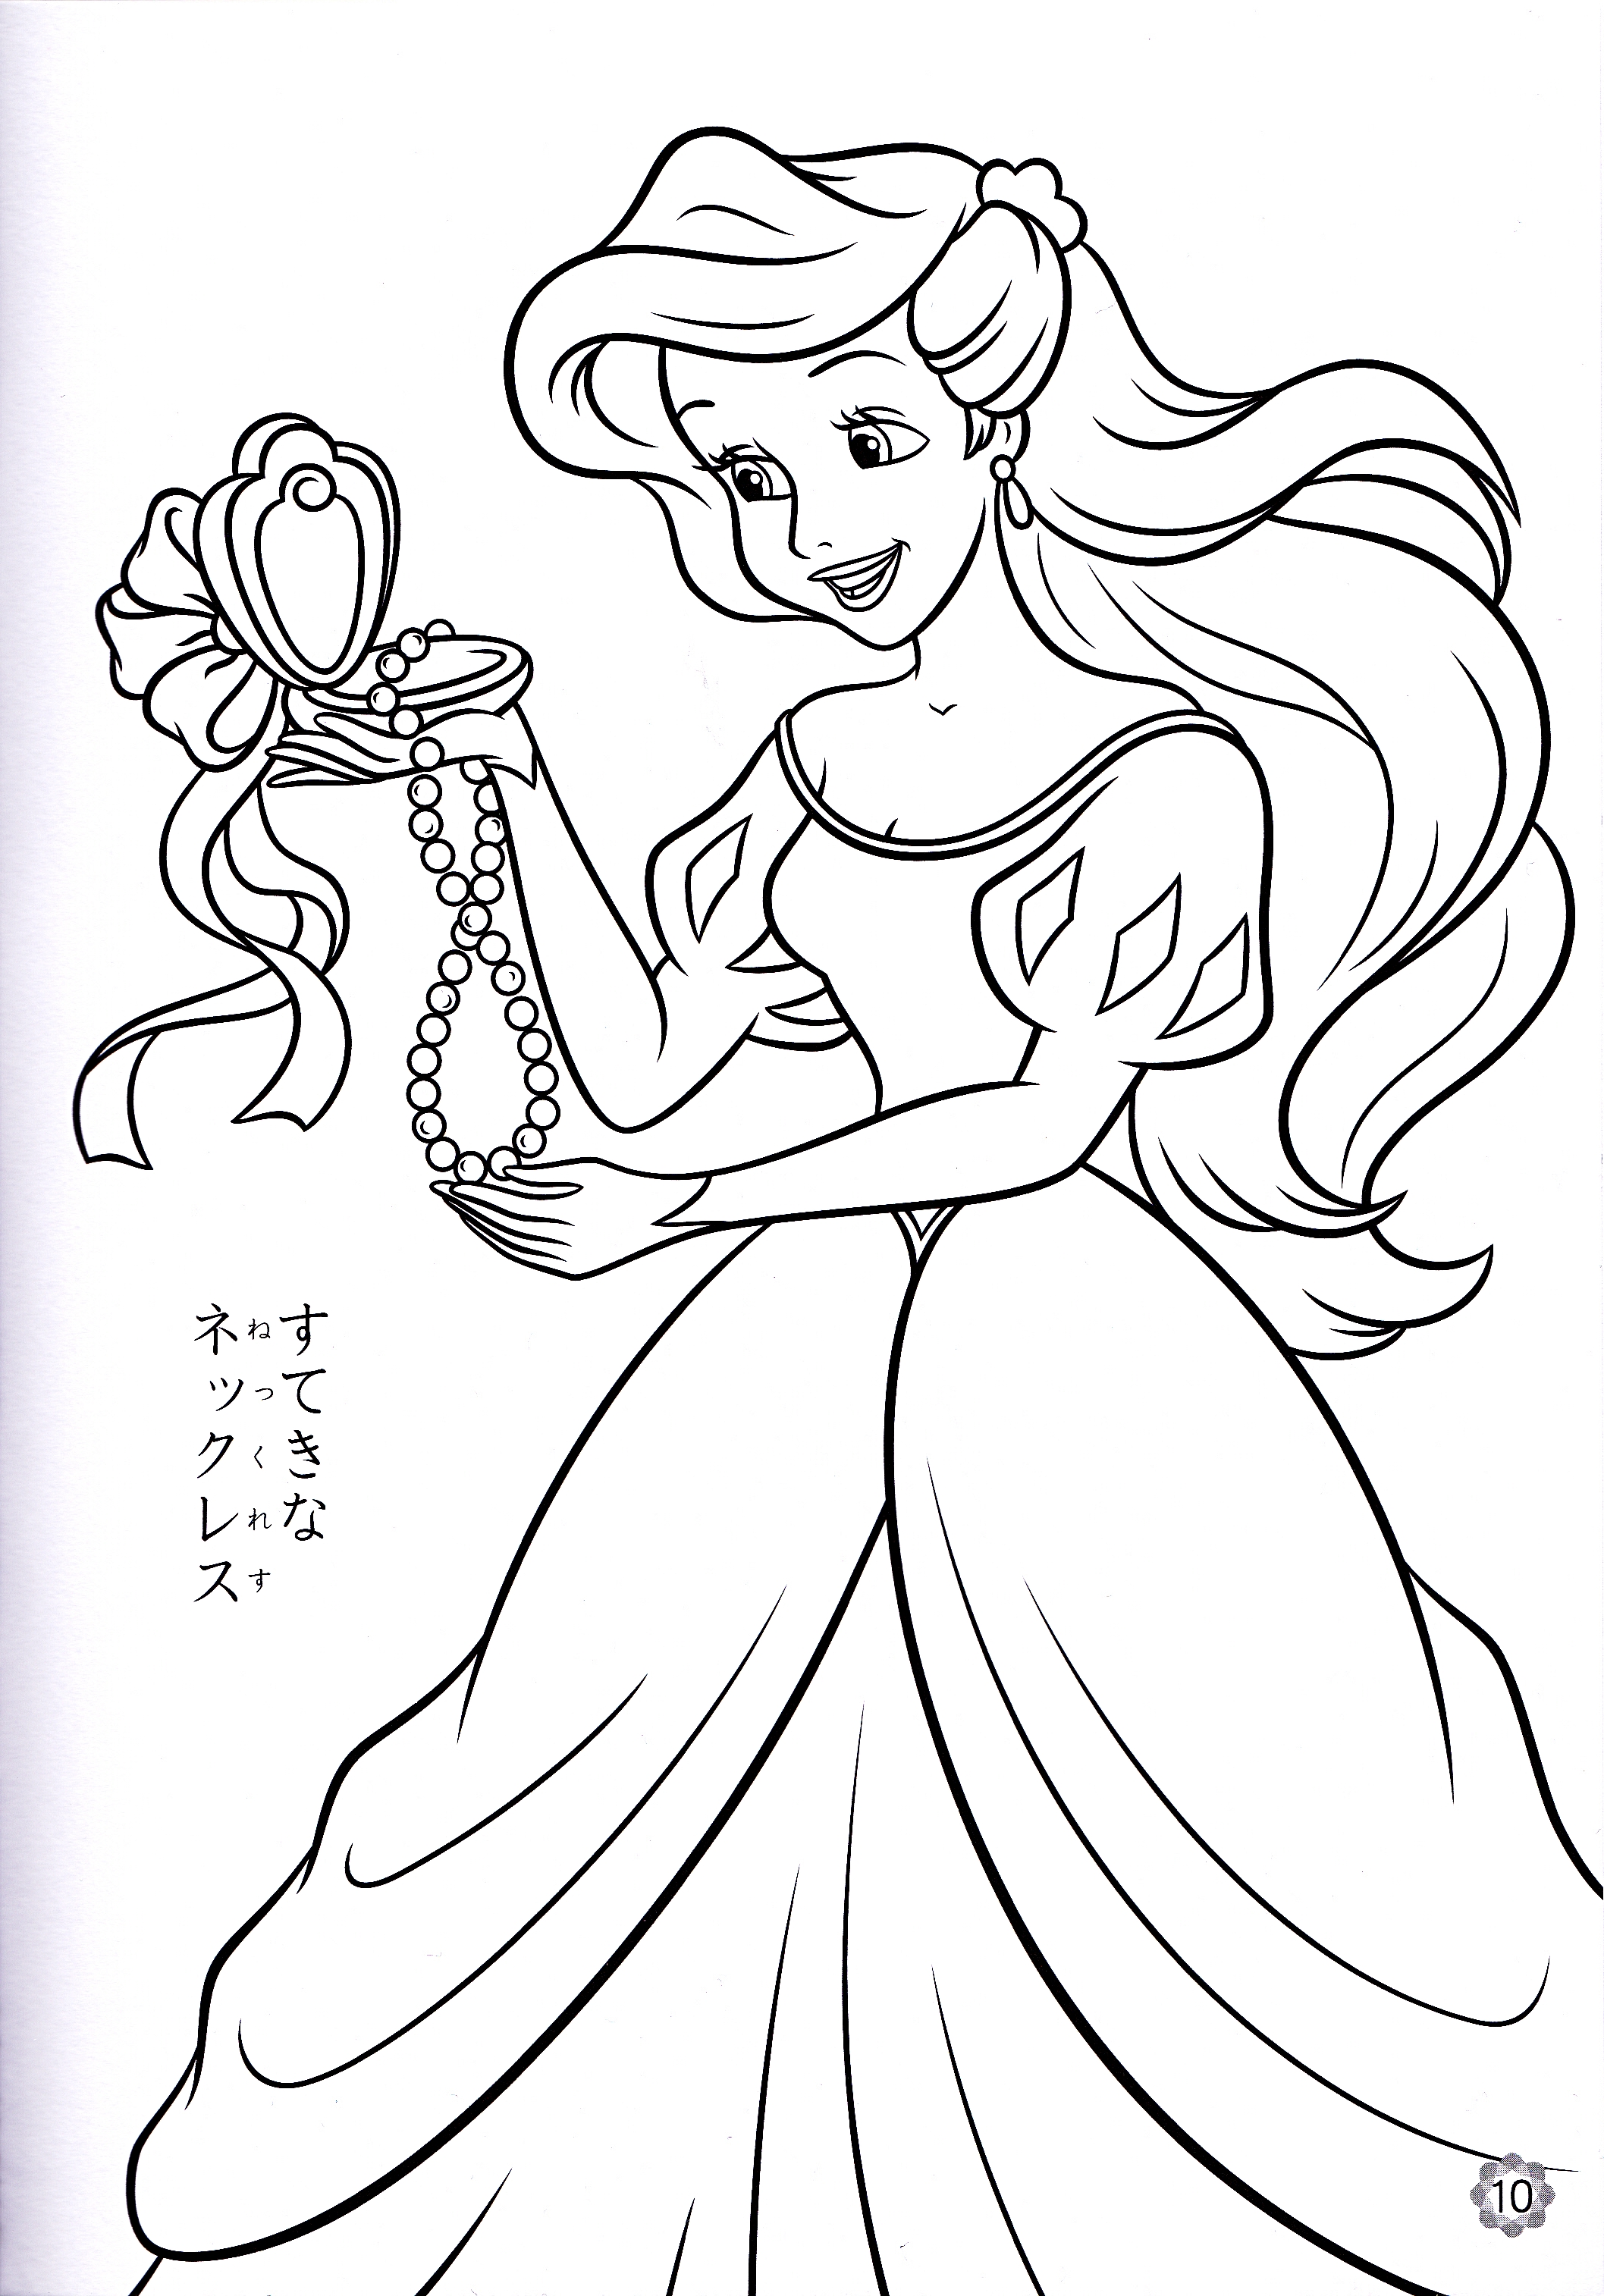 Walt Disney Coloring Pages Princess Ariel Walt Disney Princess Ariel Coloring Page Printable